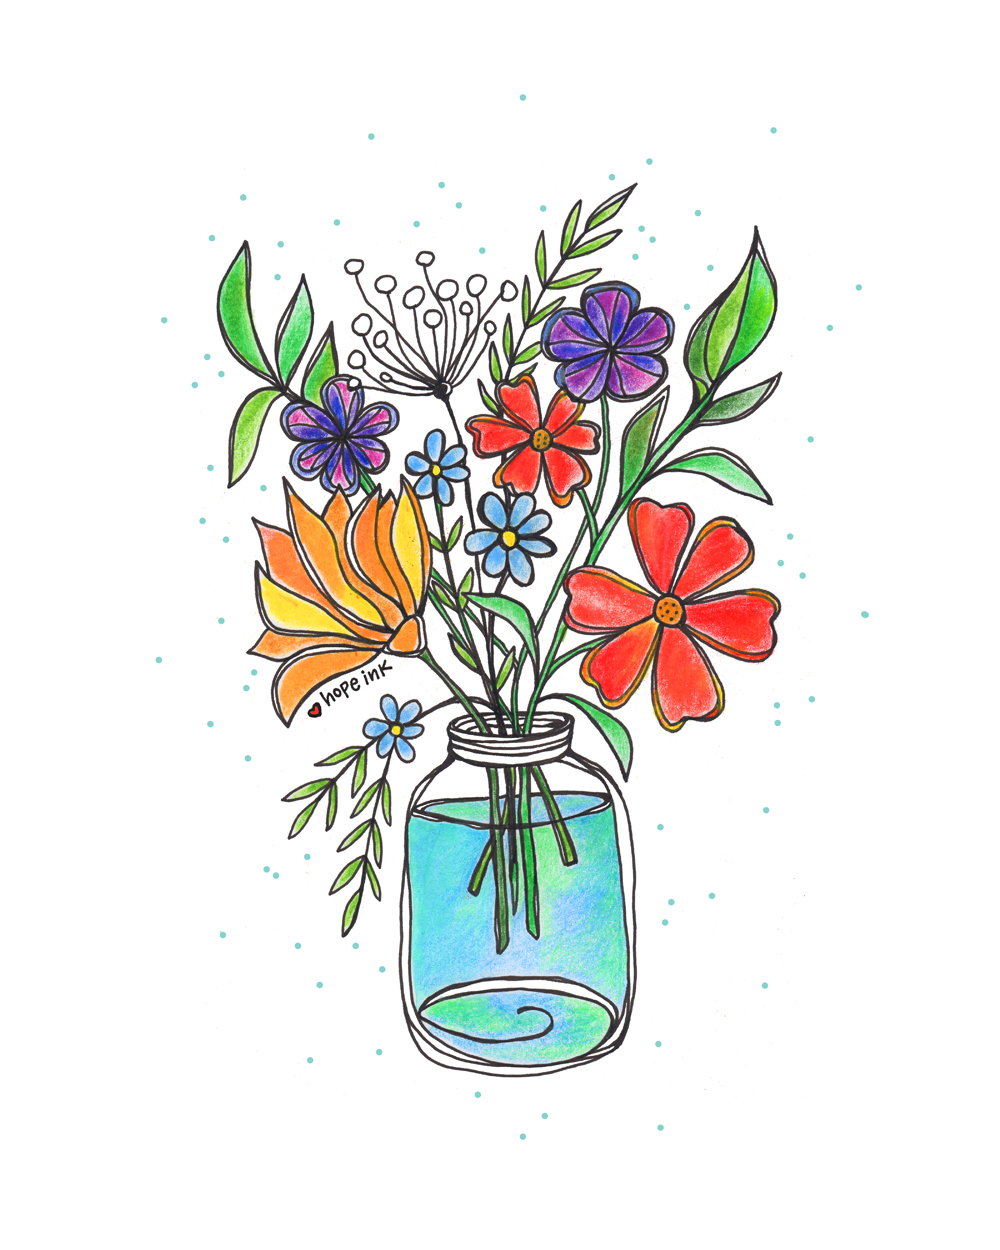 Wildflowers Illustration Hope Ink Emily Hope.jpg